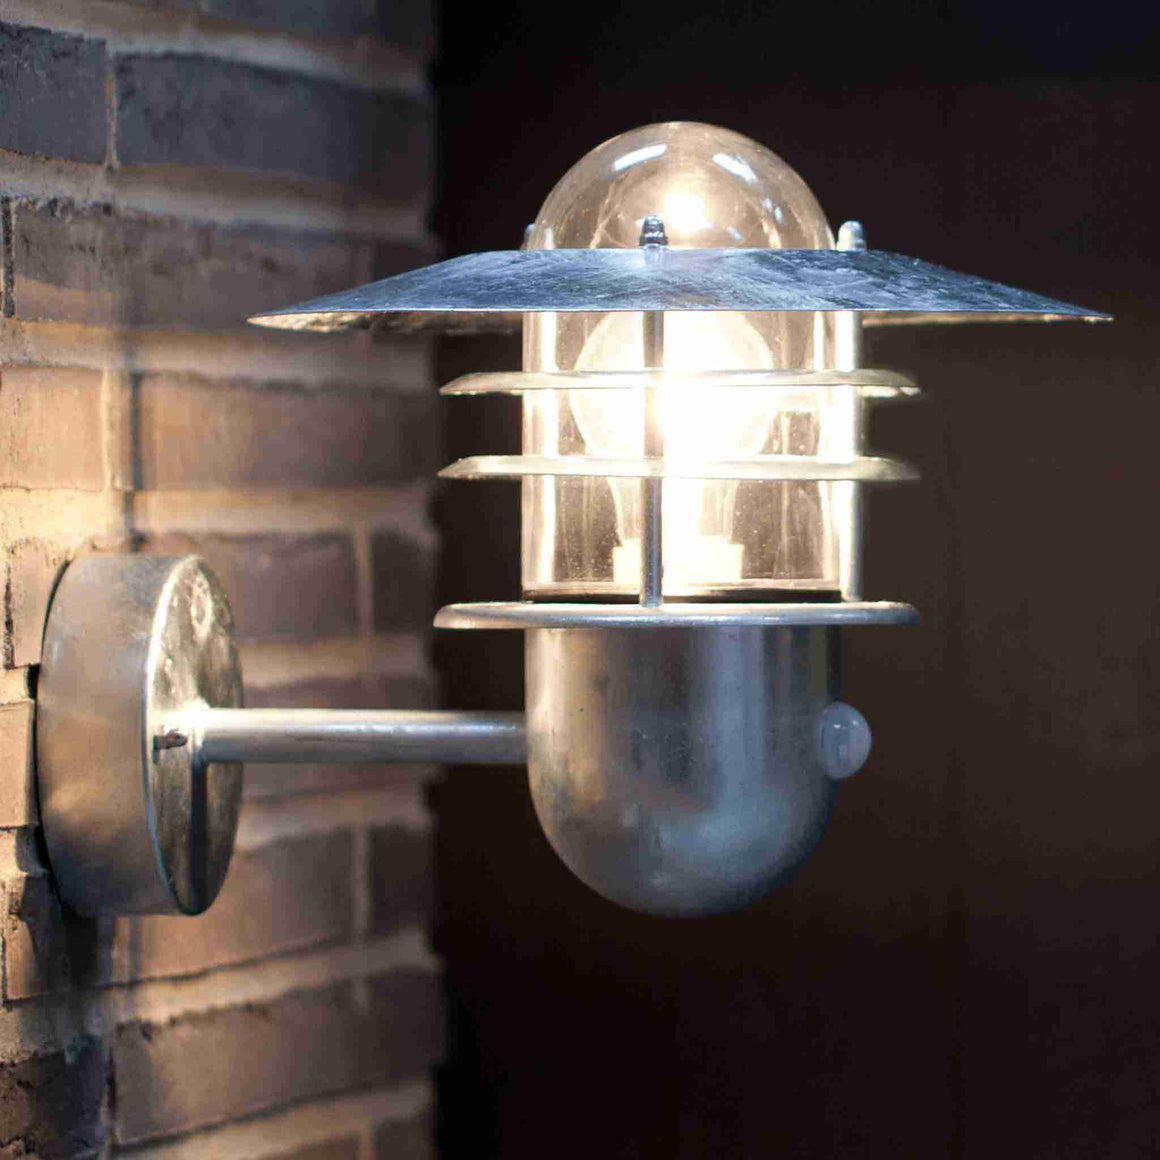 Nordlux Agger Galvanised Outdoor Sensor Wall Light - Outdoor Lighting - Lampsy